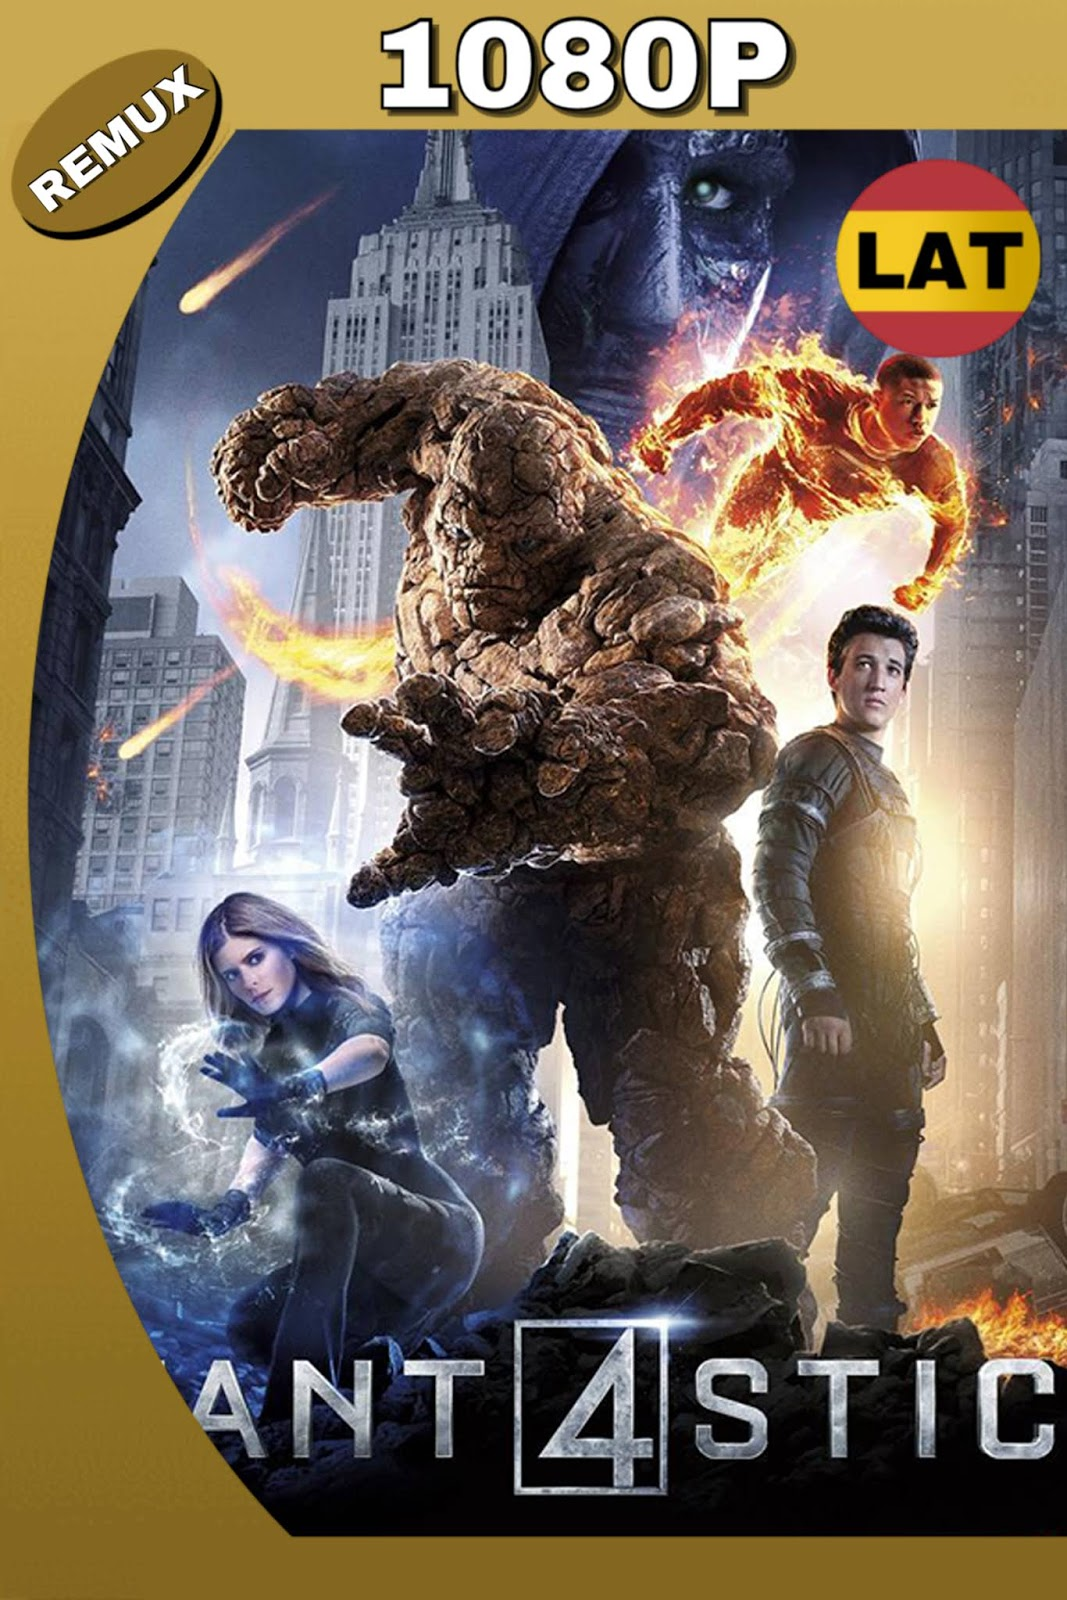 FANTASTIC FOUR 2015 LAT-ING HD BDREMUX 1080P 28GB.mkv